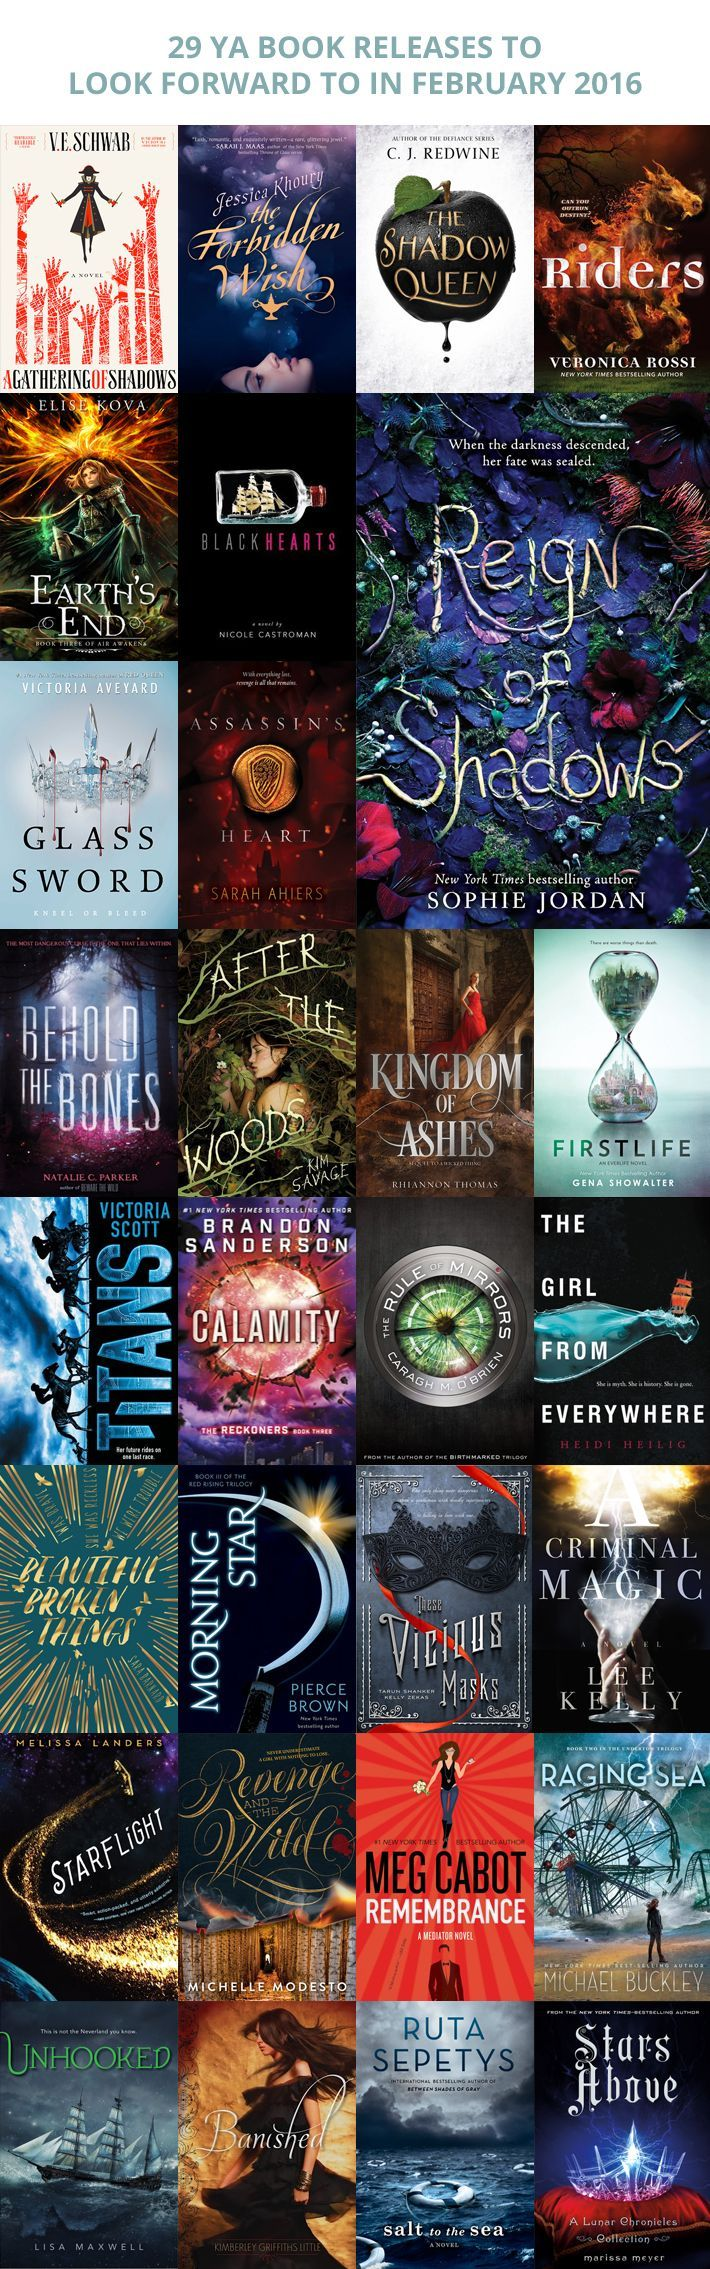 29 Ya Book Releases To Look Forward To In February 2016 -1882